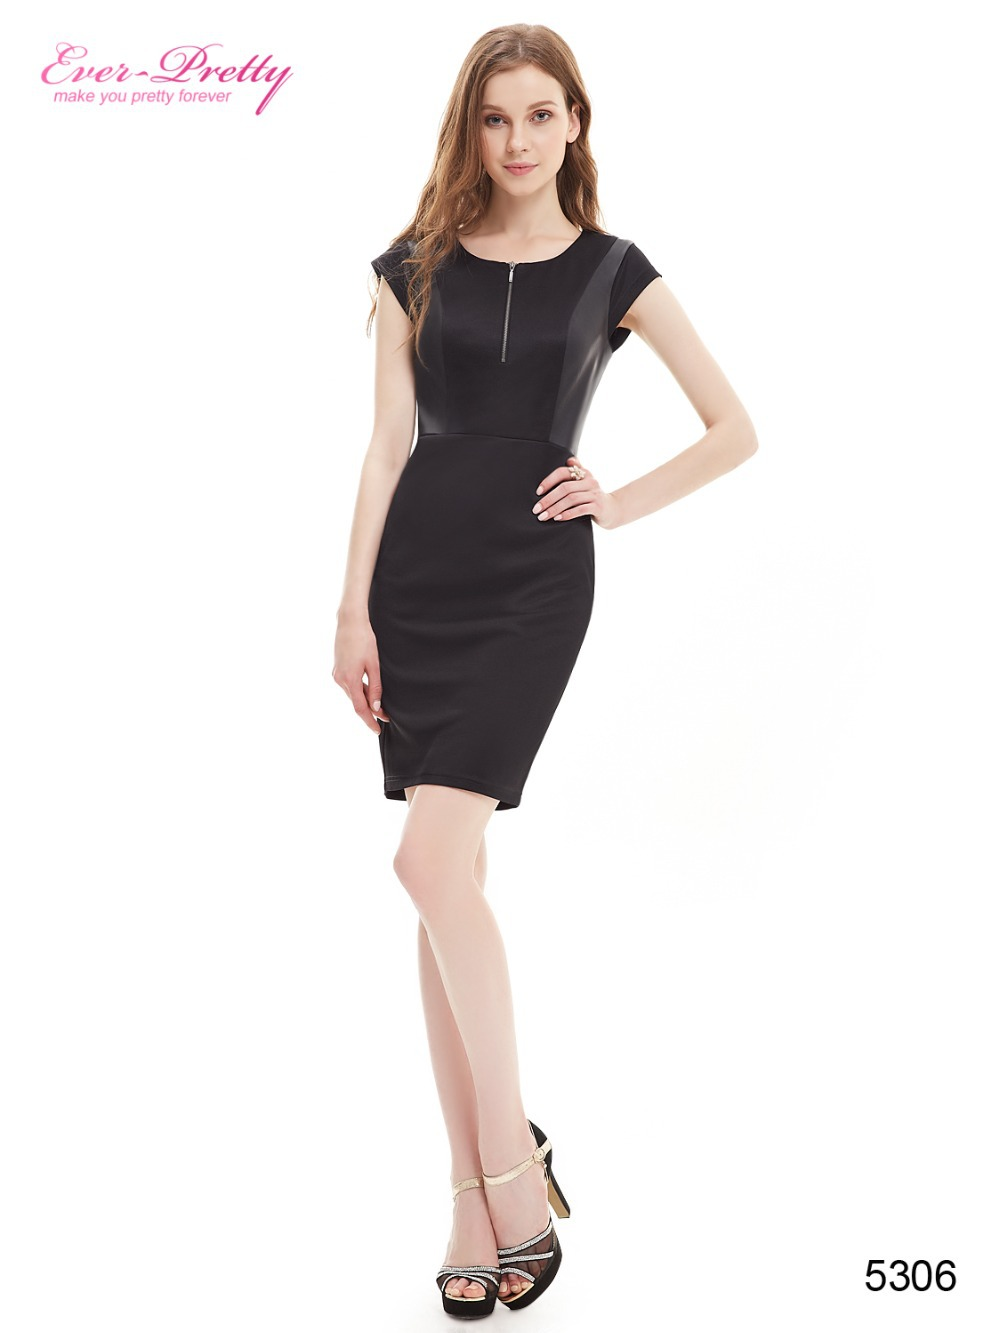 Clearance Sale  Black Sexy Cocktail Dresses Ever-Pretty Stylish Stretchy  Short Sleeve Dresses Women Casual Dress HE05306BK 8bf9a6ec851d